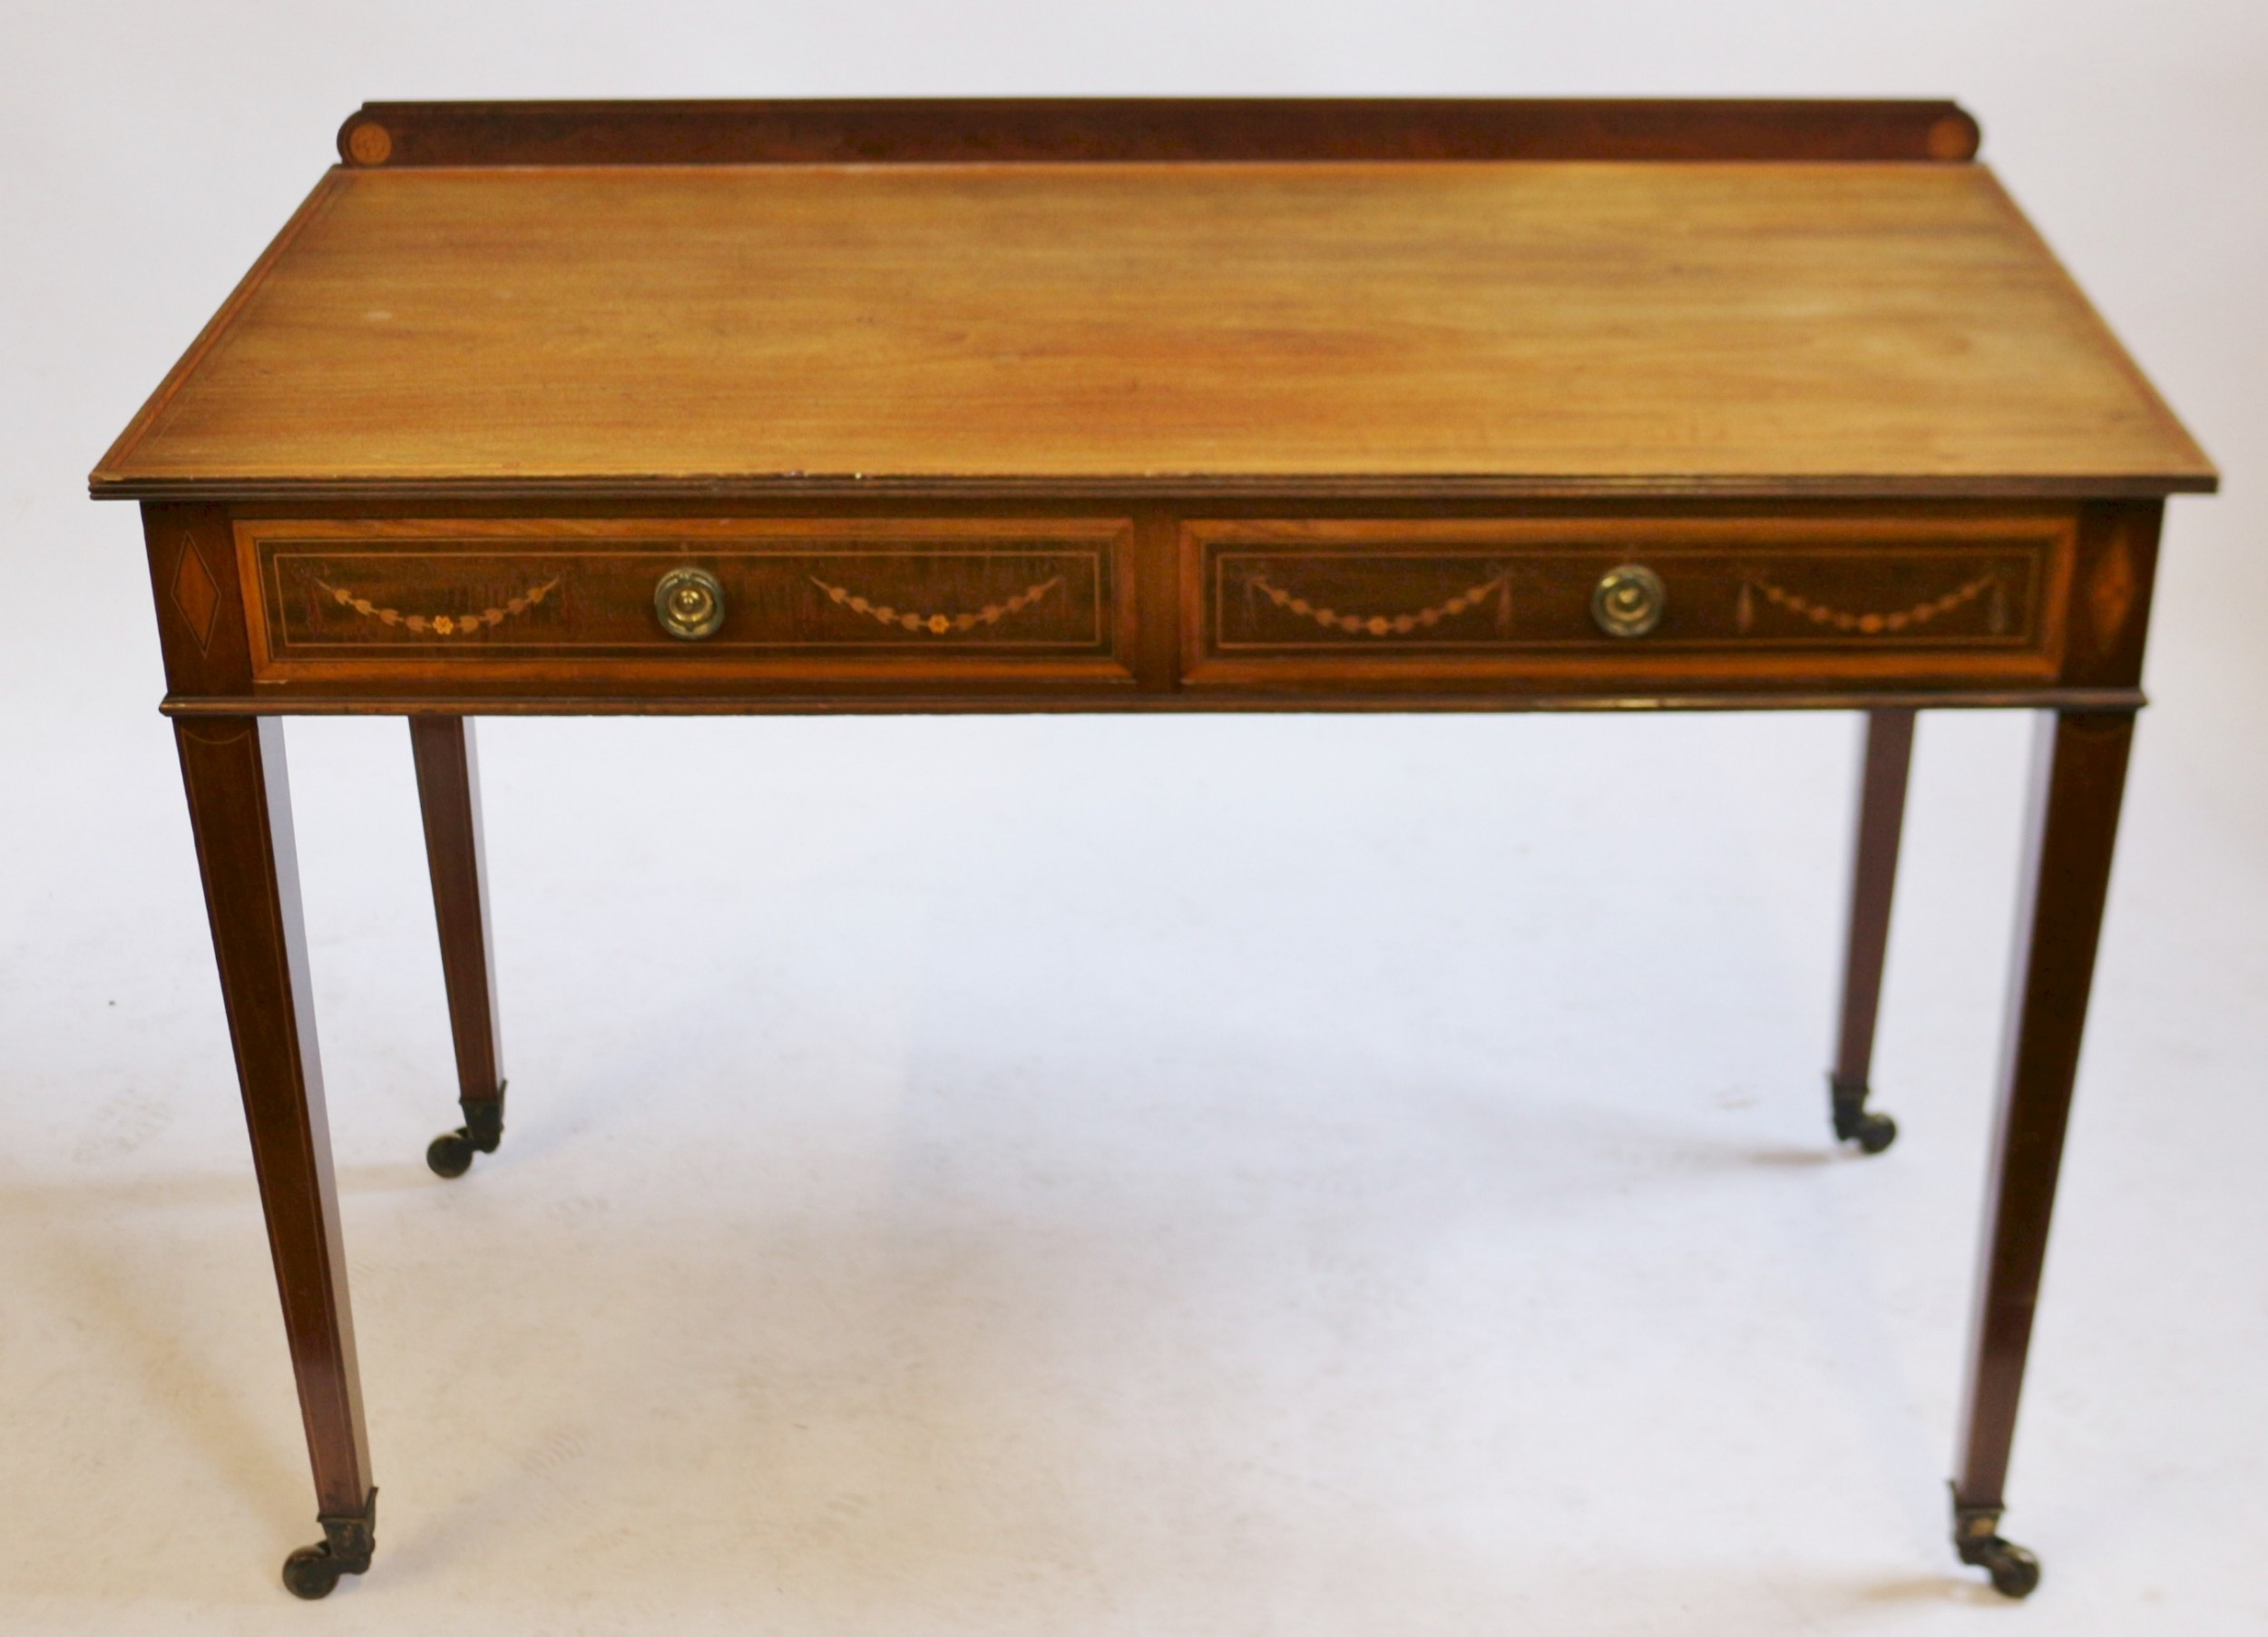 edwardian mahogany inlaid 2 drawer side table